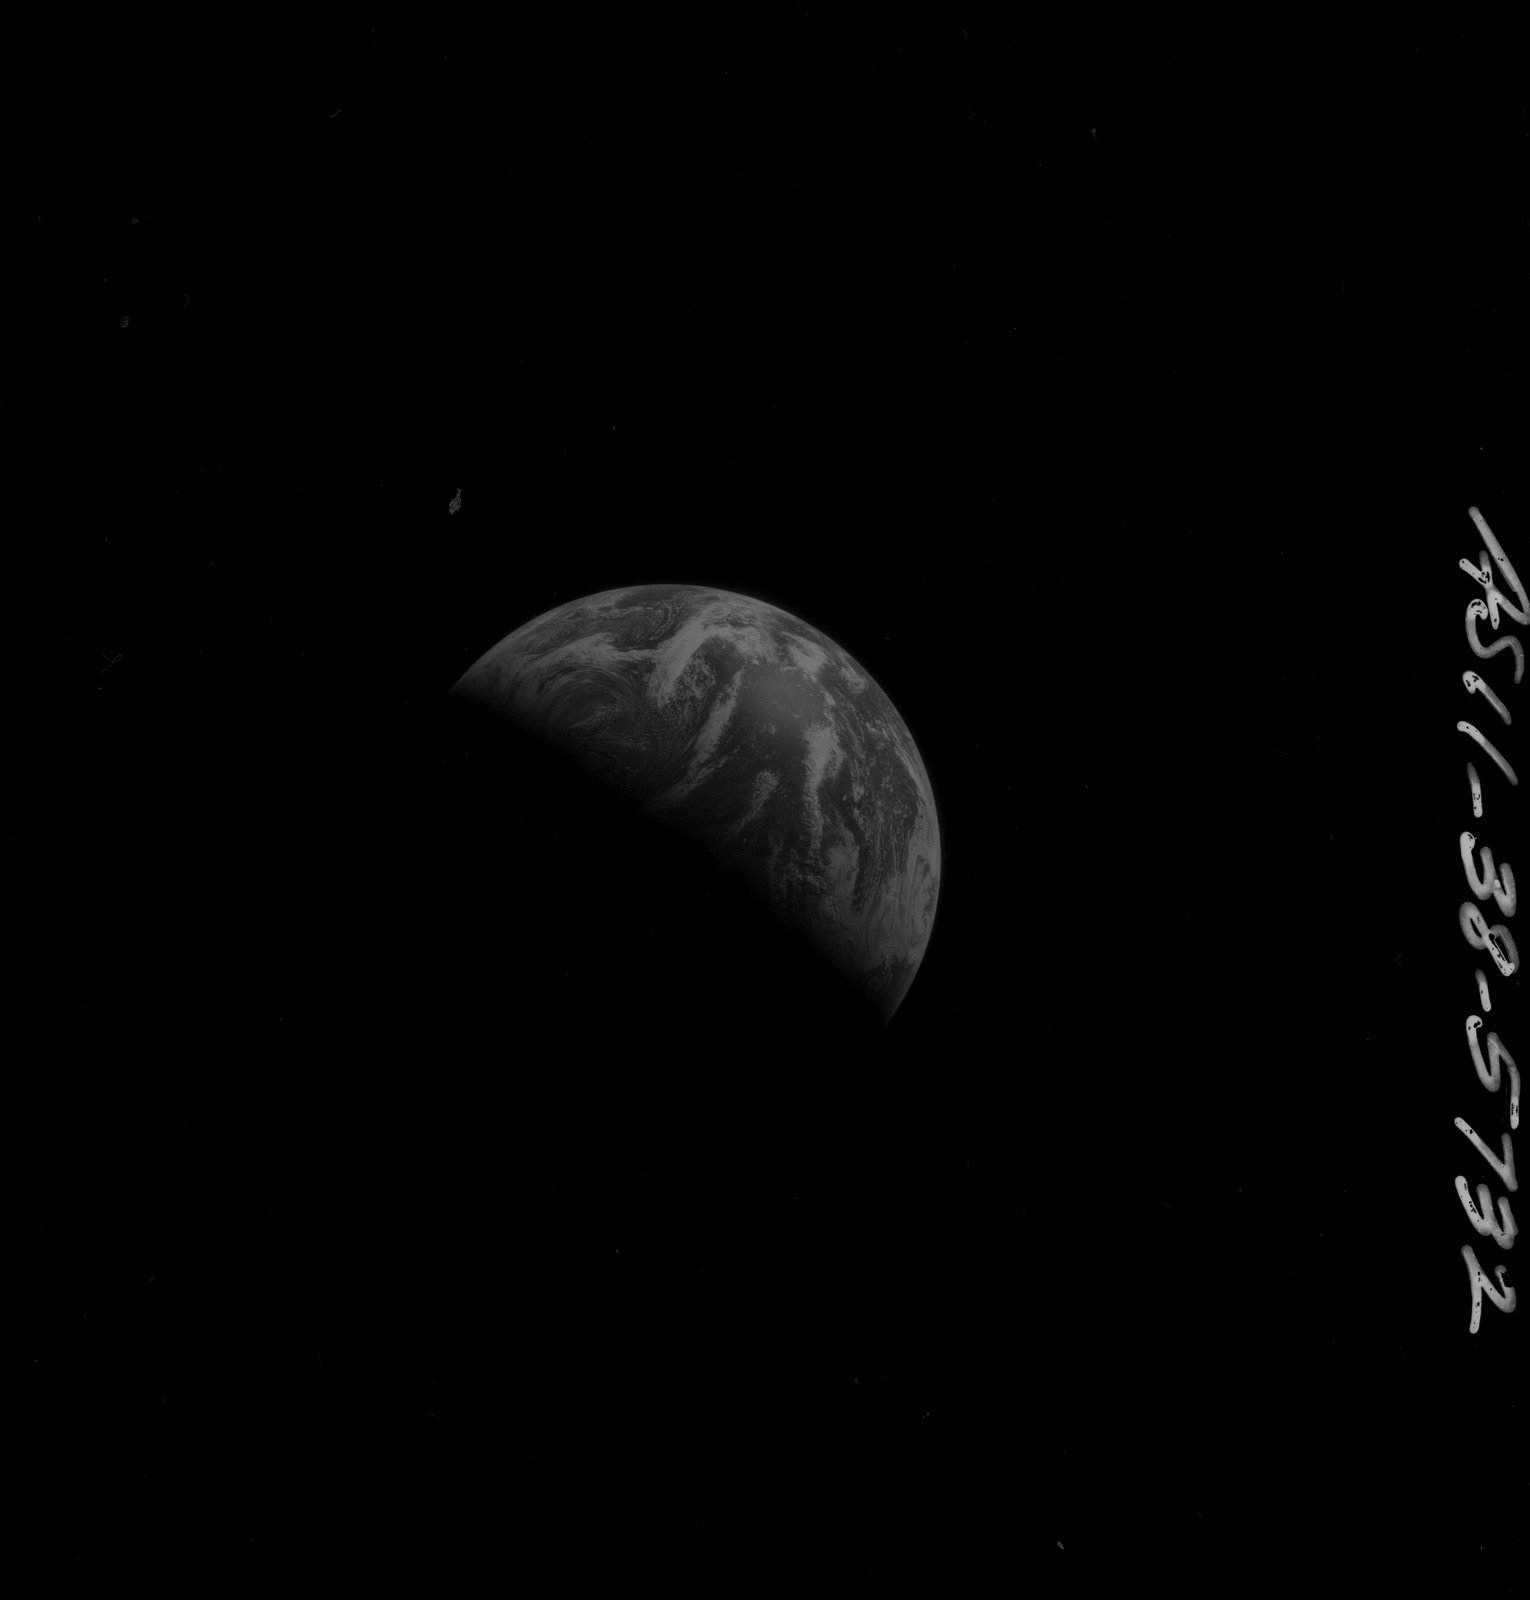 AS11-38-5732 - Apollo 11 - Apollo 11 Mission image - View of Earth after Transearth Insertion